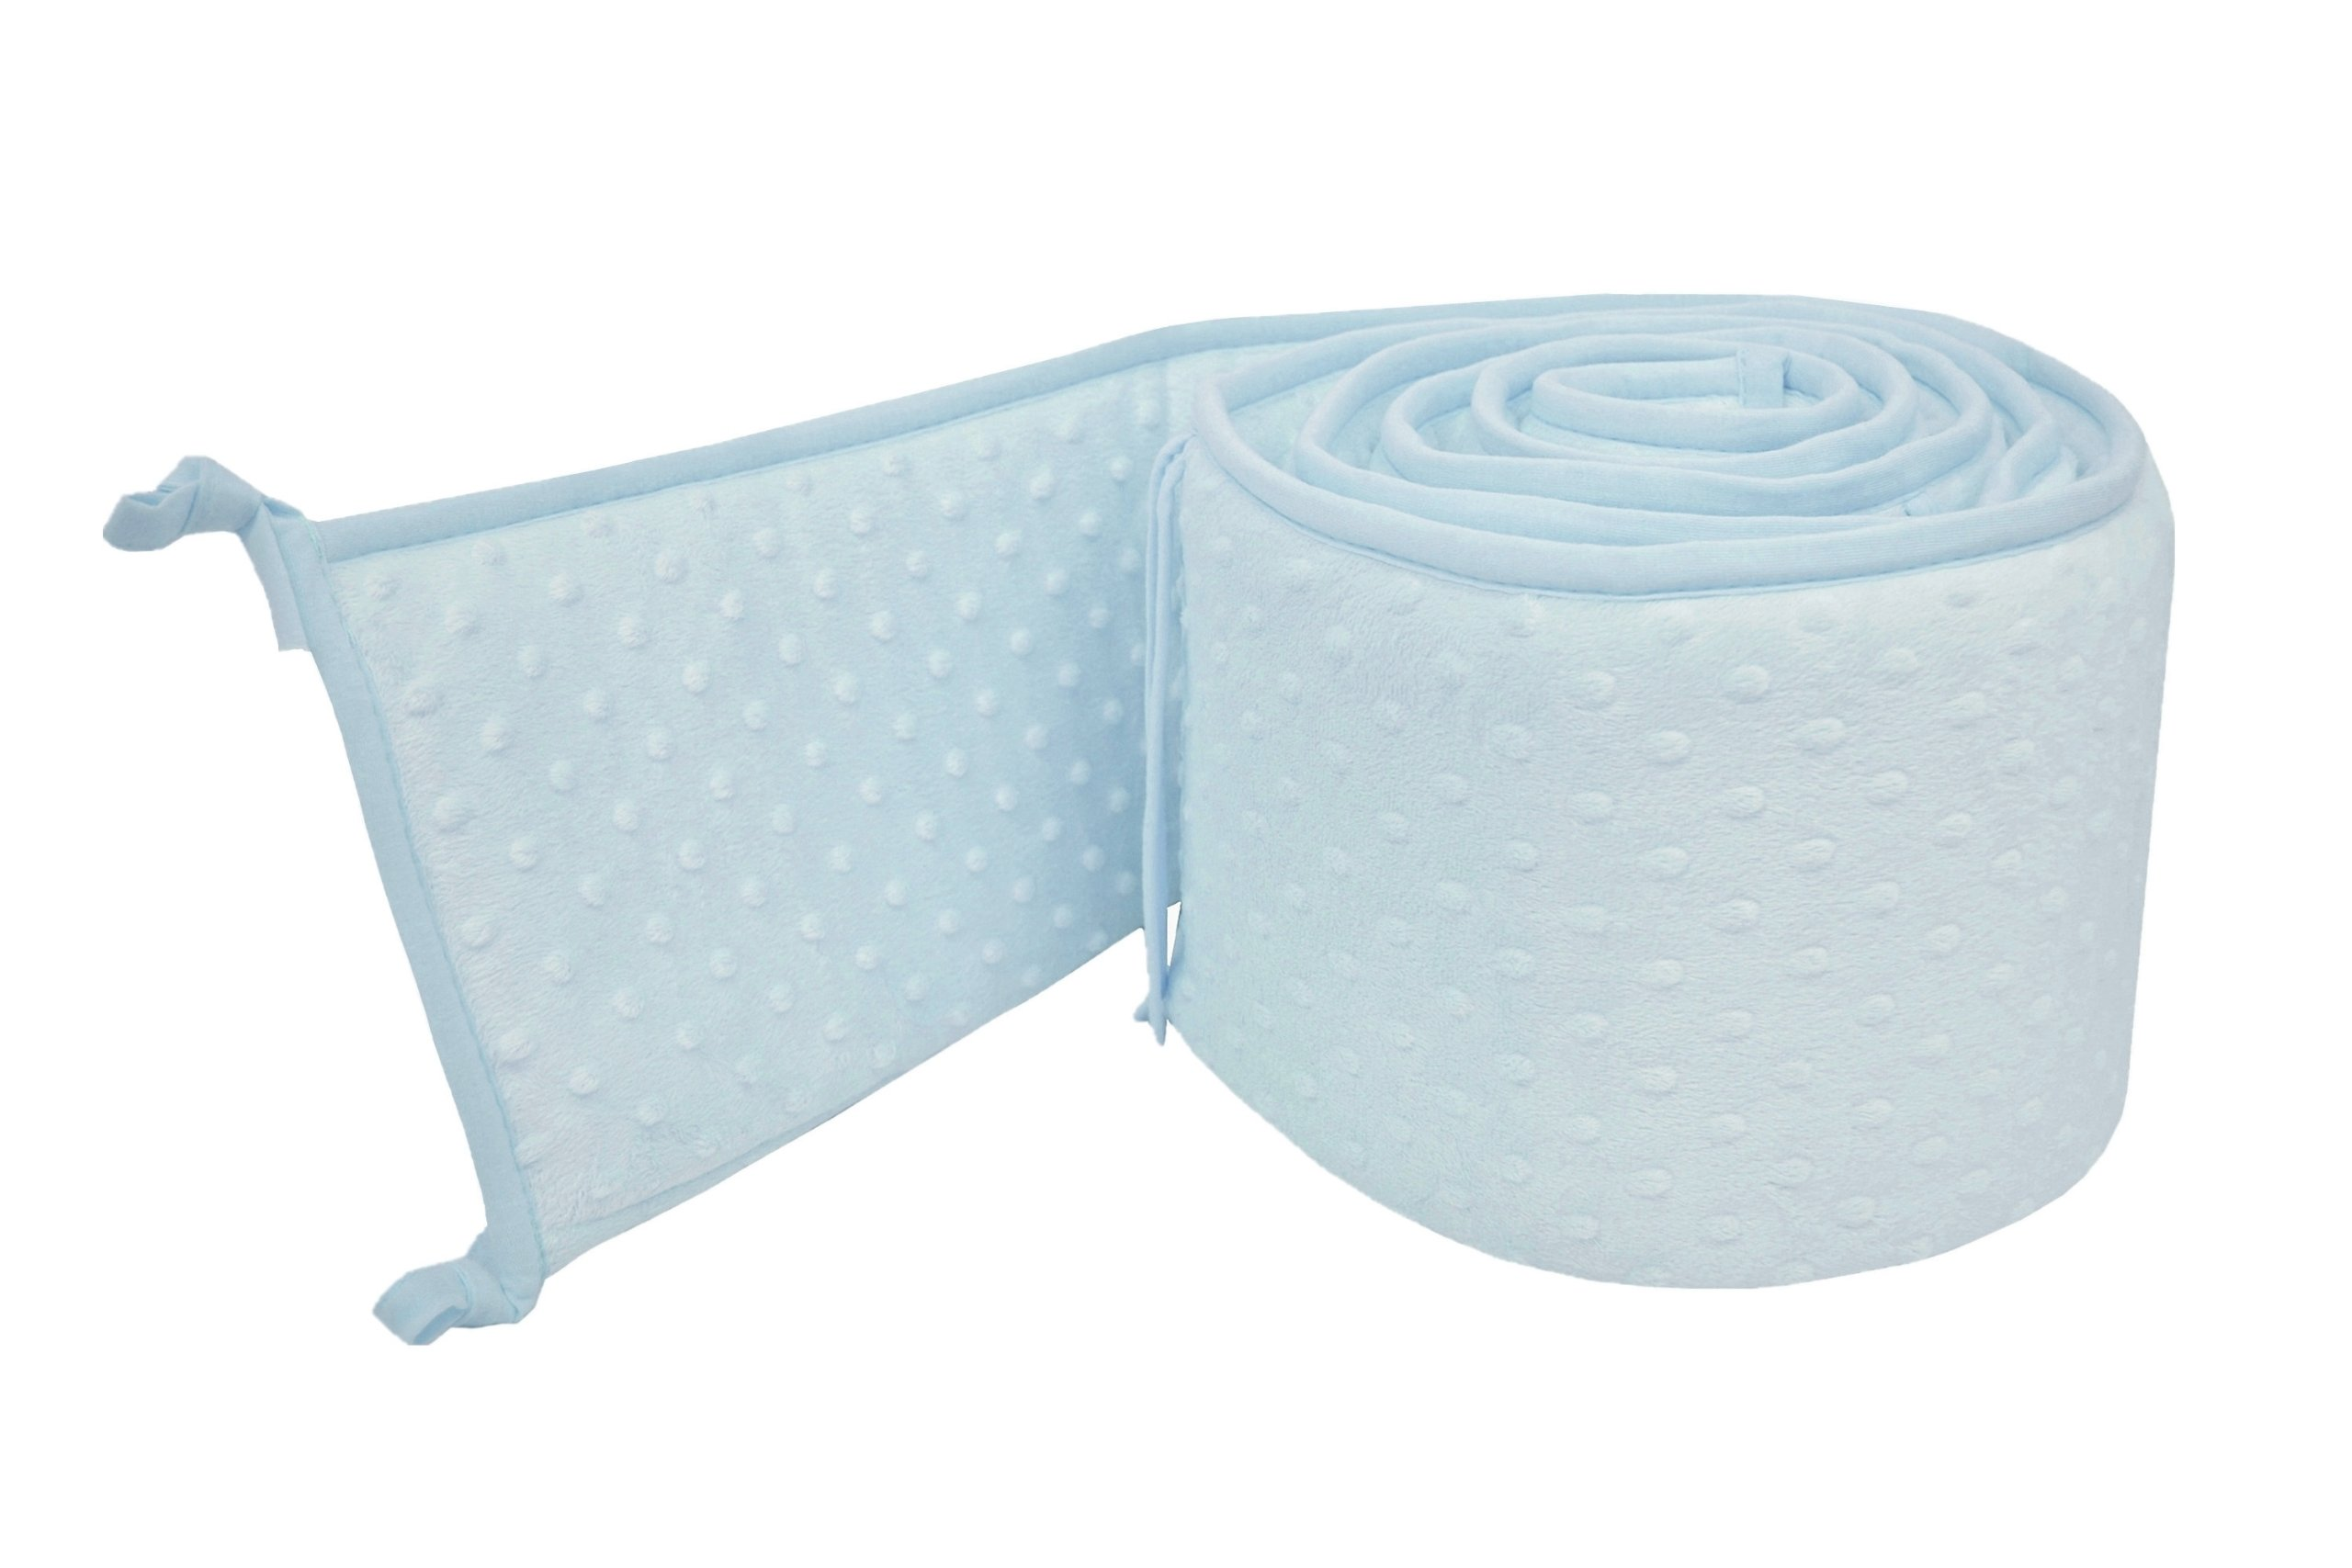 American Baby Company Heavenly Soft Minky Dot Portable and Mini-Crib Bumper, Blue Puff (Not for Crib), for Boys and Girls